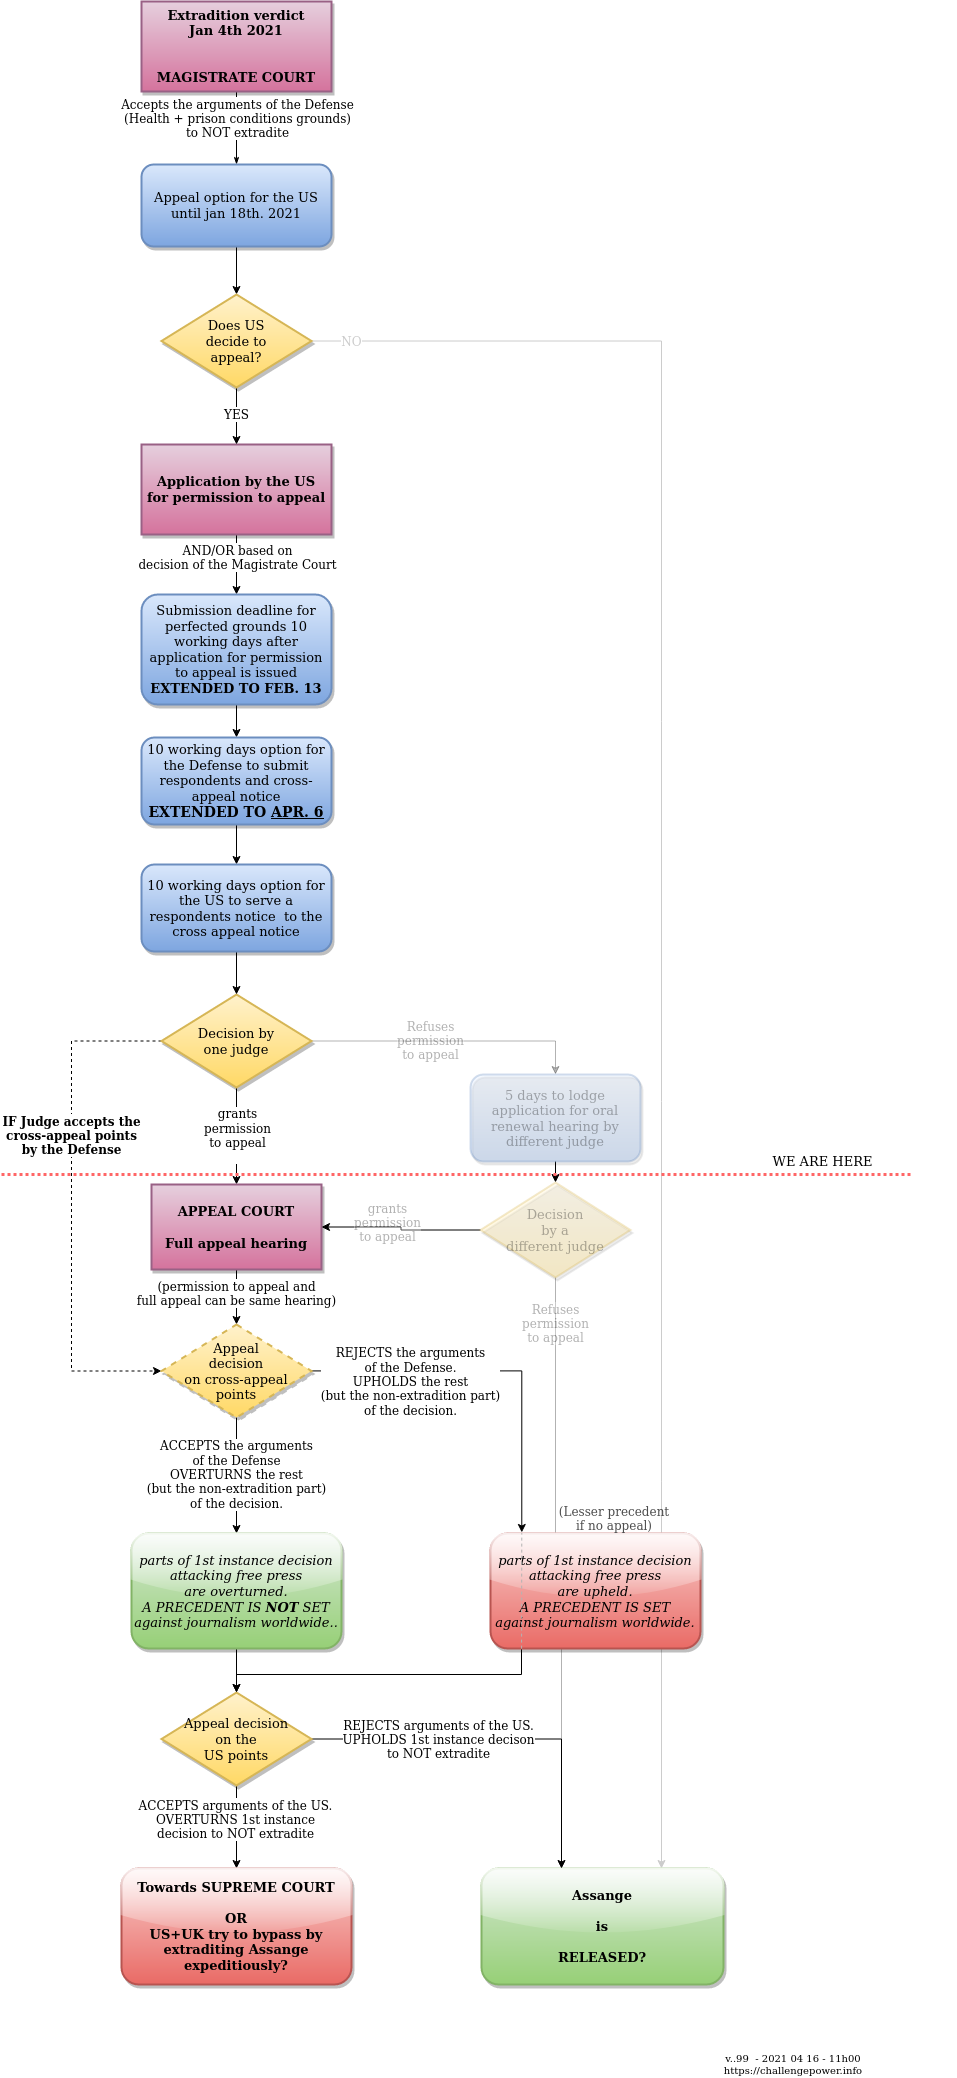 2021-01:next_steps_in_assange_extradition_procedure_after_jan_4th_first_instance_decision_20210707_14h00.png